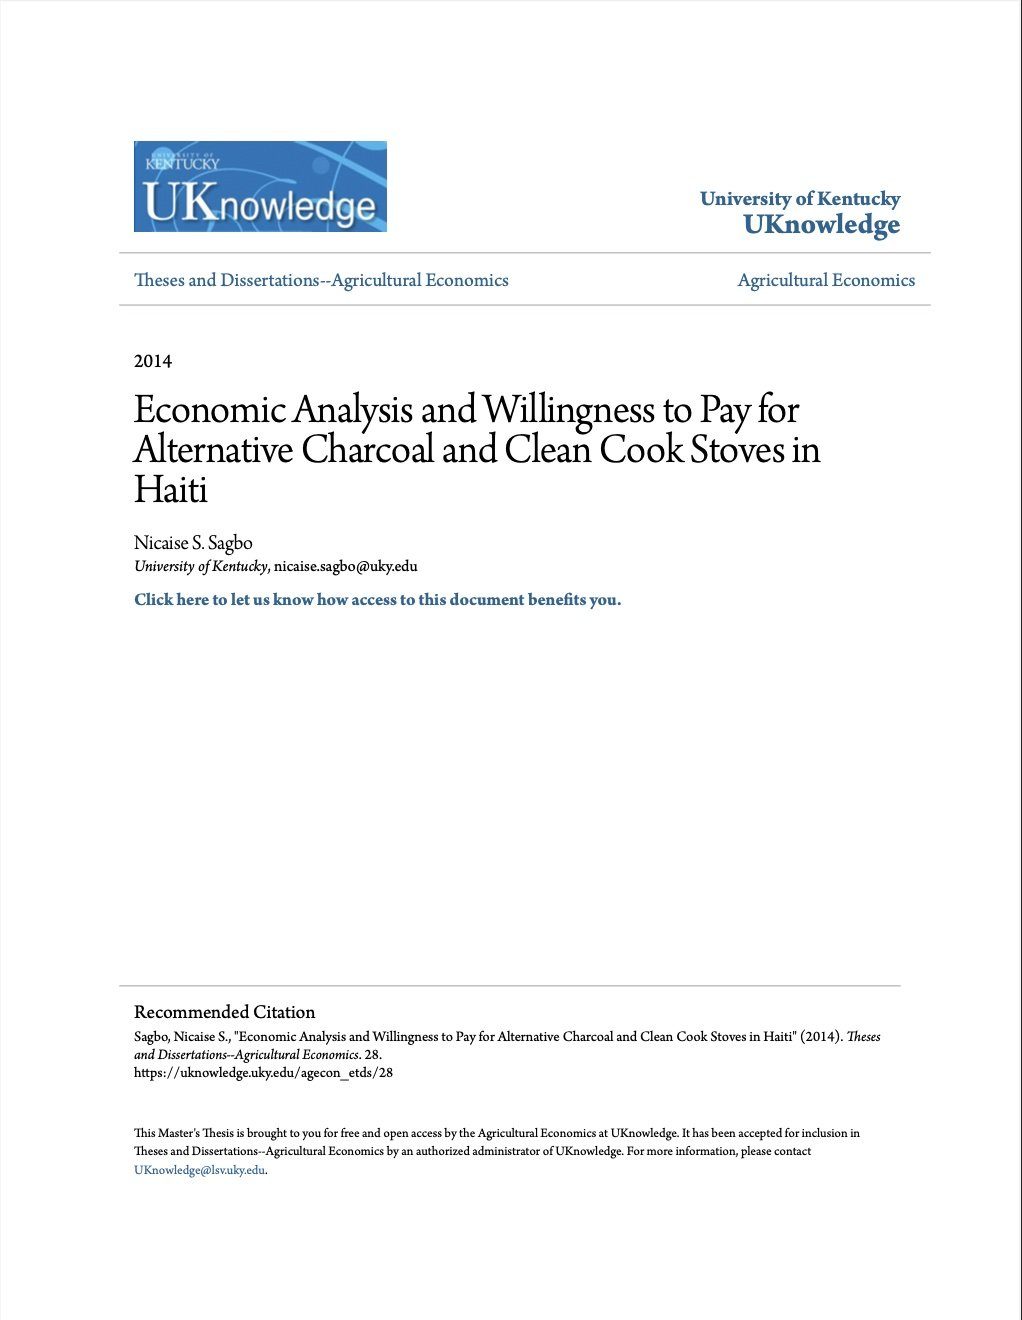 Read more about the article Economic Analysis and Willingness to Pay for Alternative Charcoal and Clean Cook Stoves in Haiti